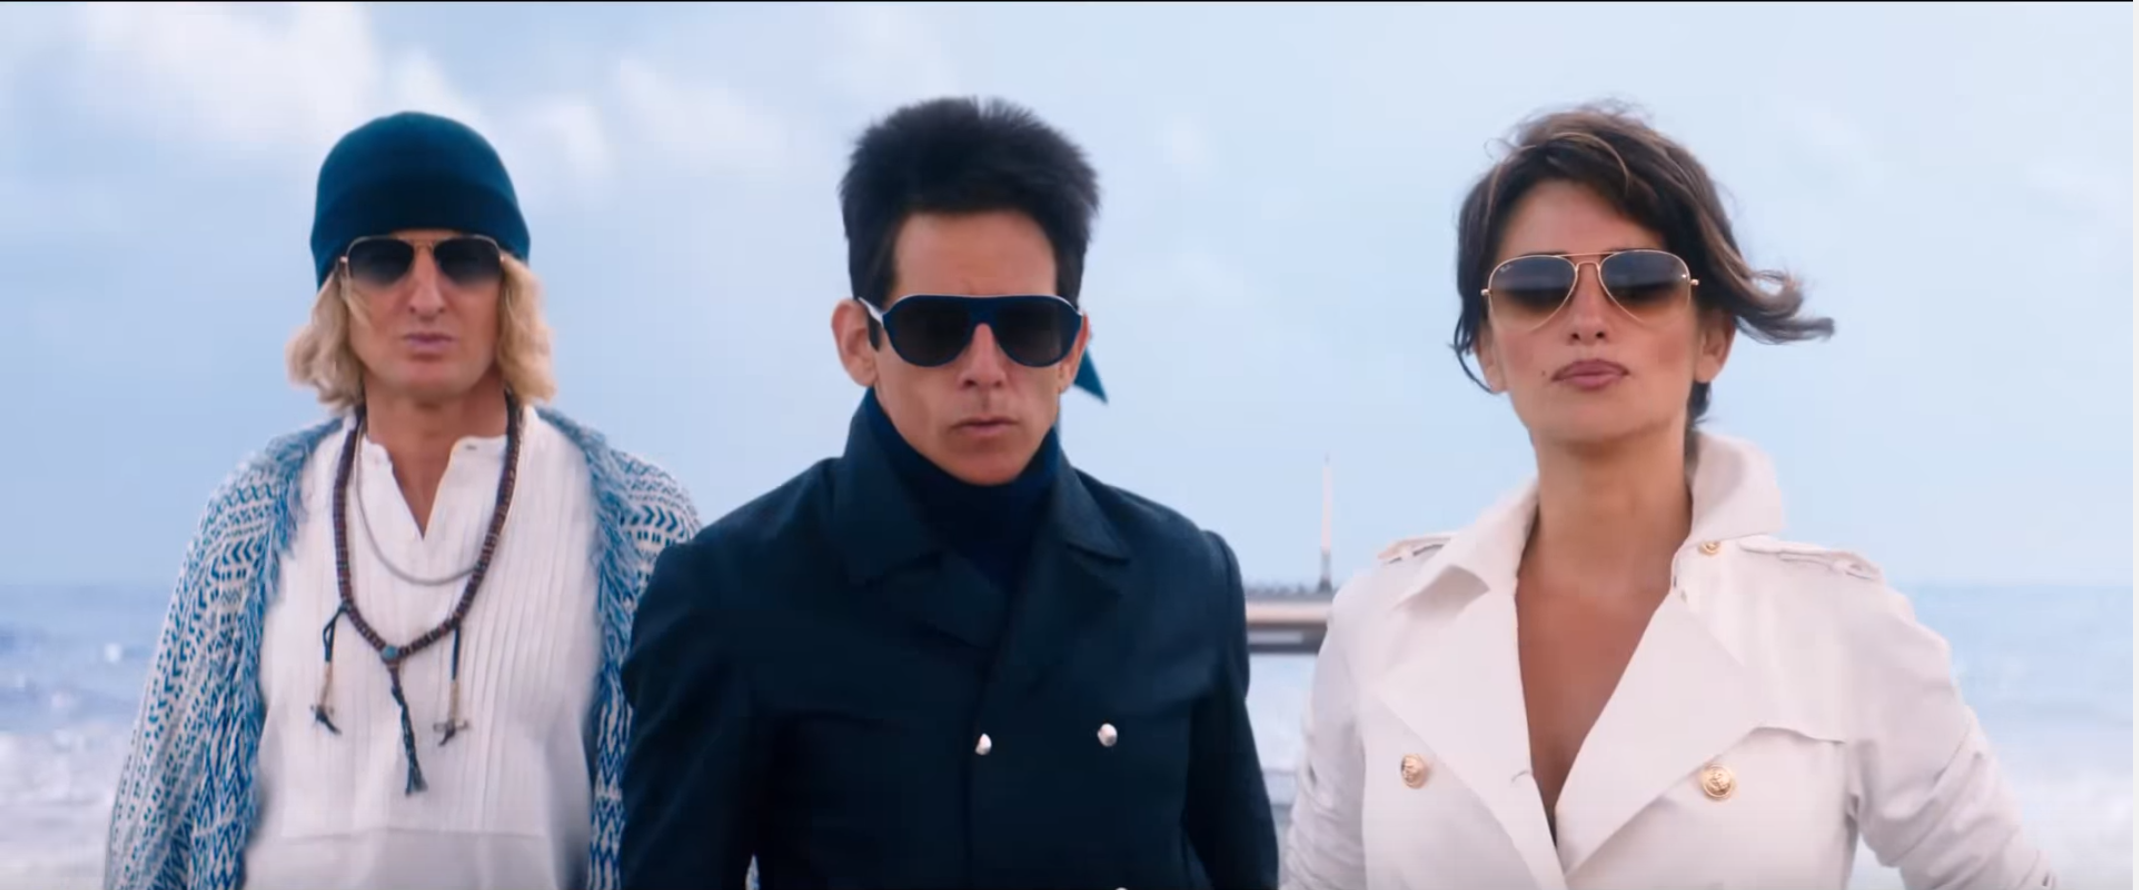 Zoolander 2 Actually Looks Funny!